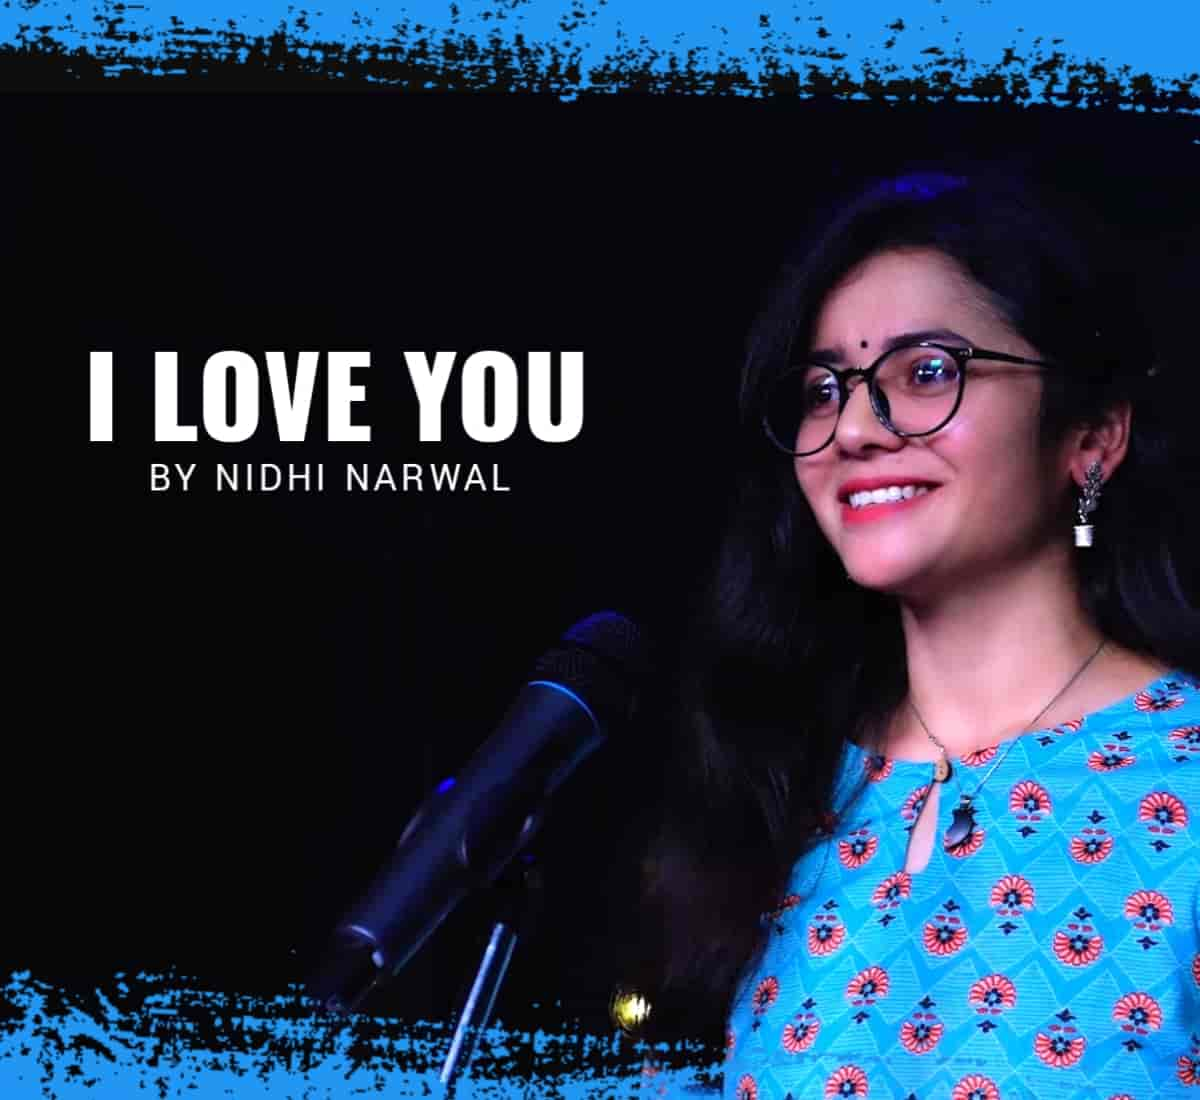 In this biggest festival of love, named Valentine's Day, on which the very talented young poetess Nidhi Narwal composes a lovely poem titled 'I Love You'